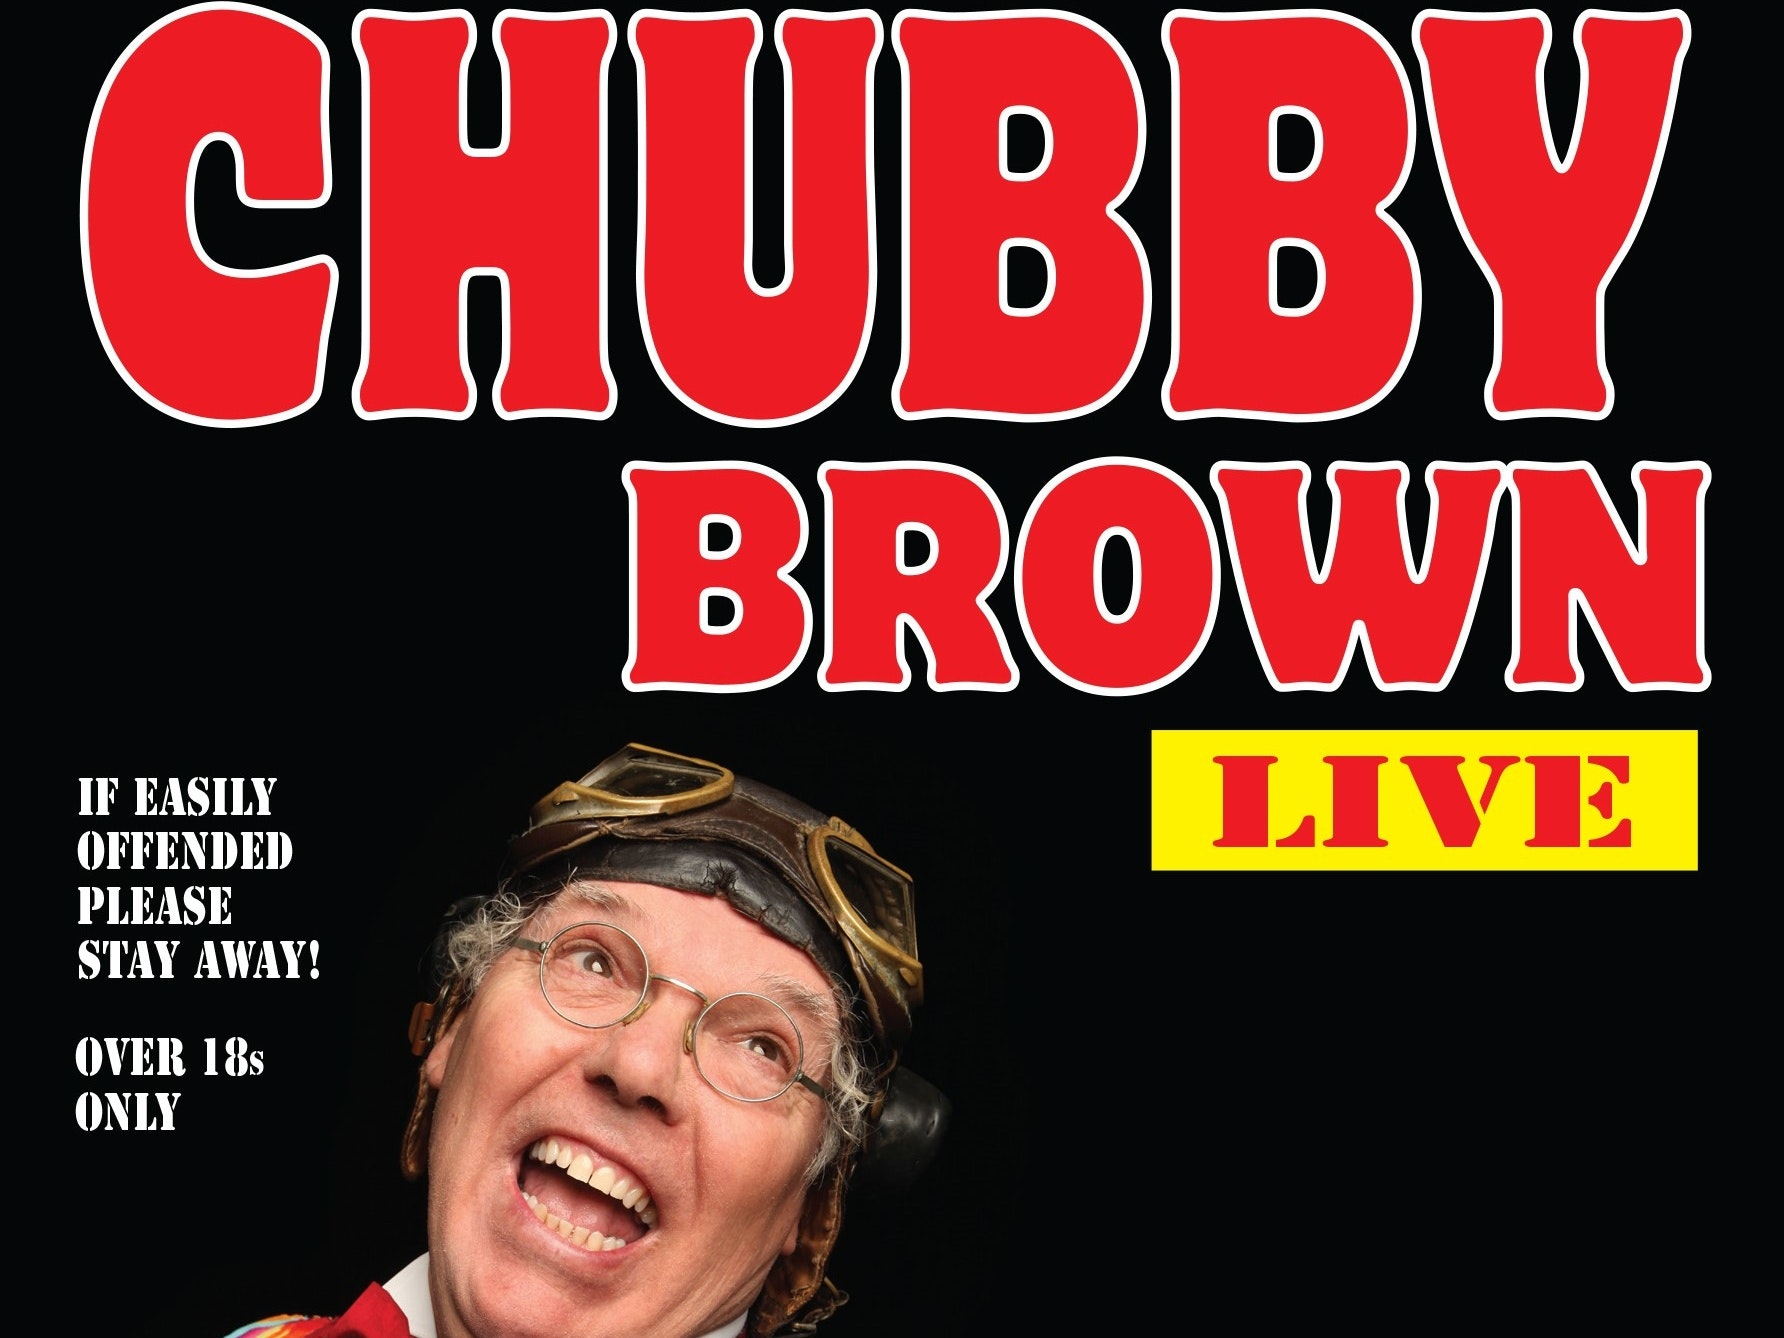 Brown stand chubby up Roy